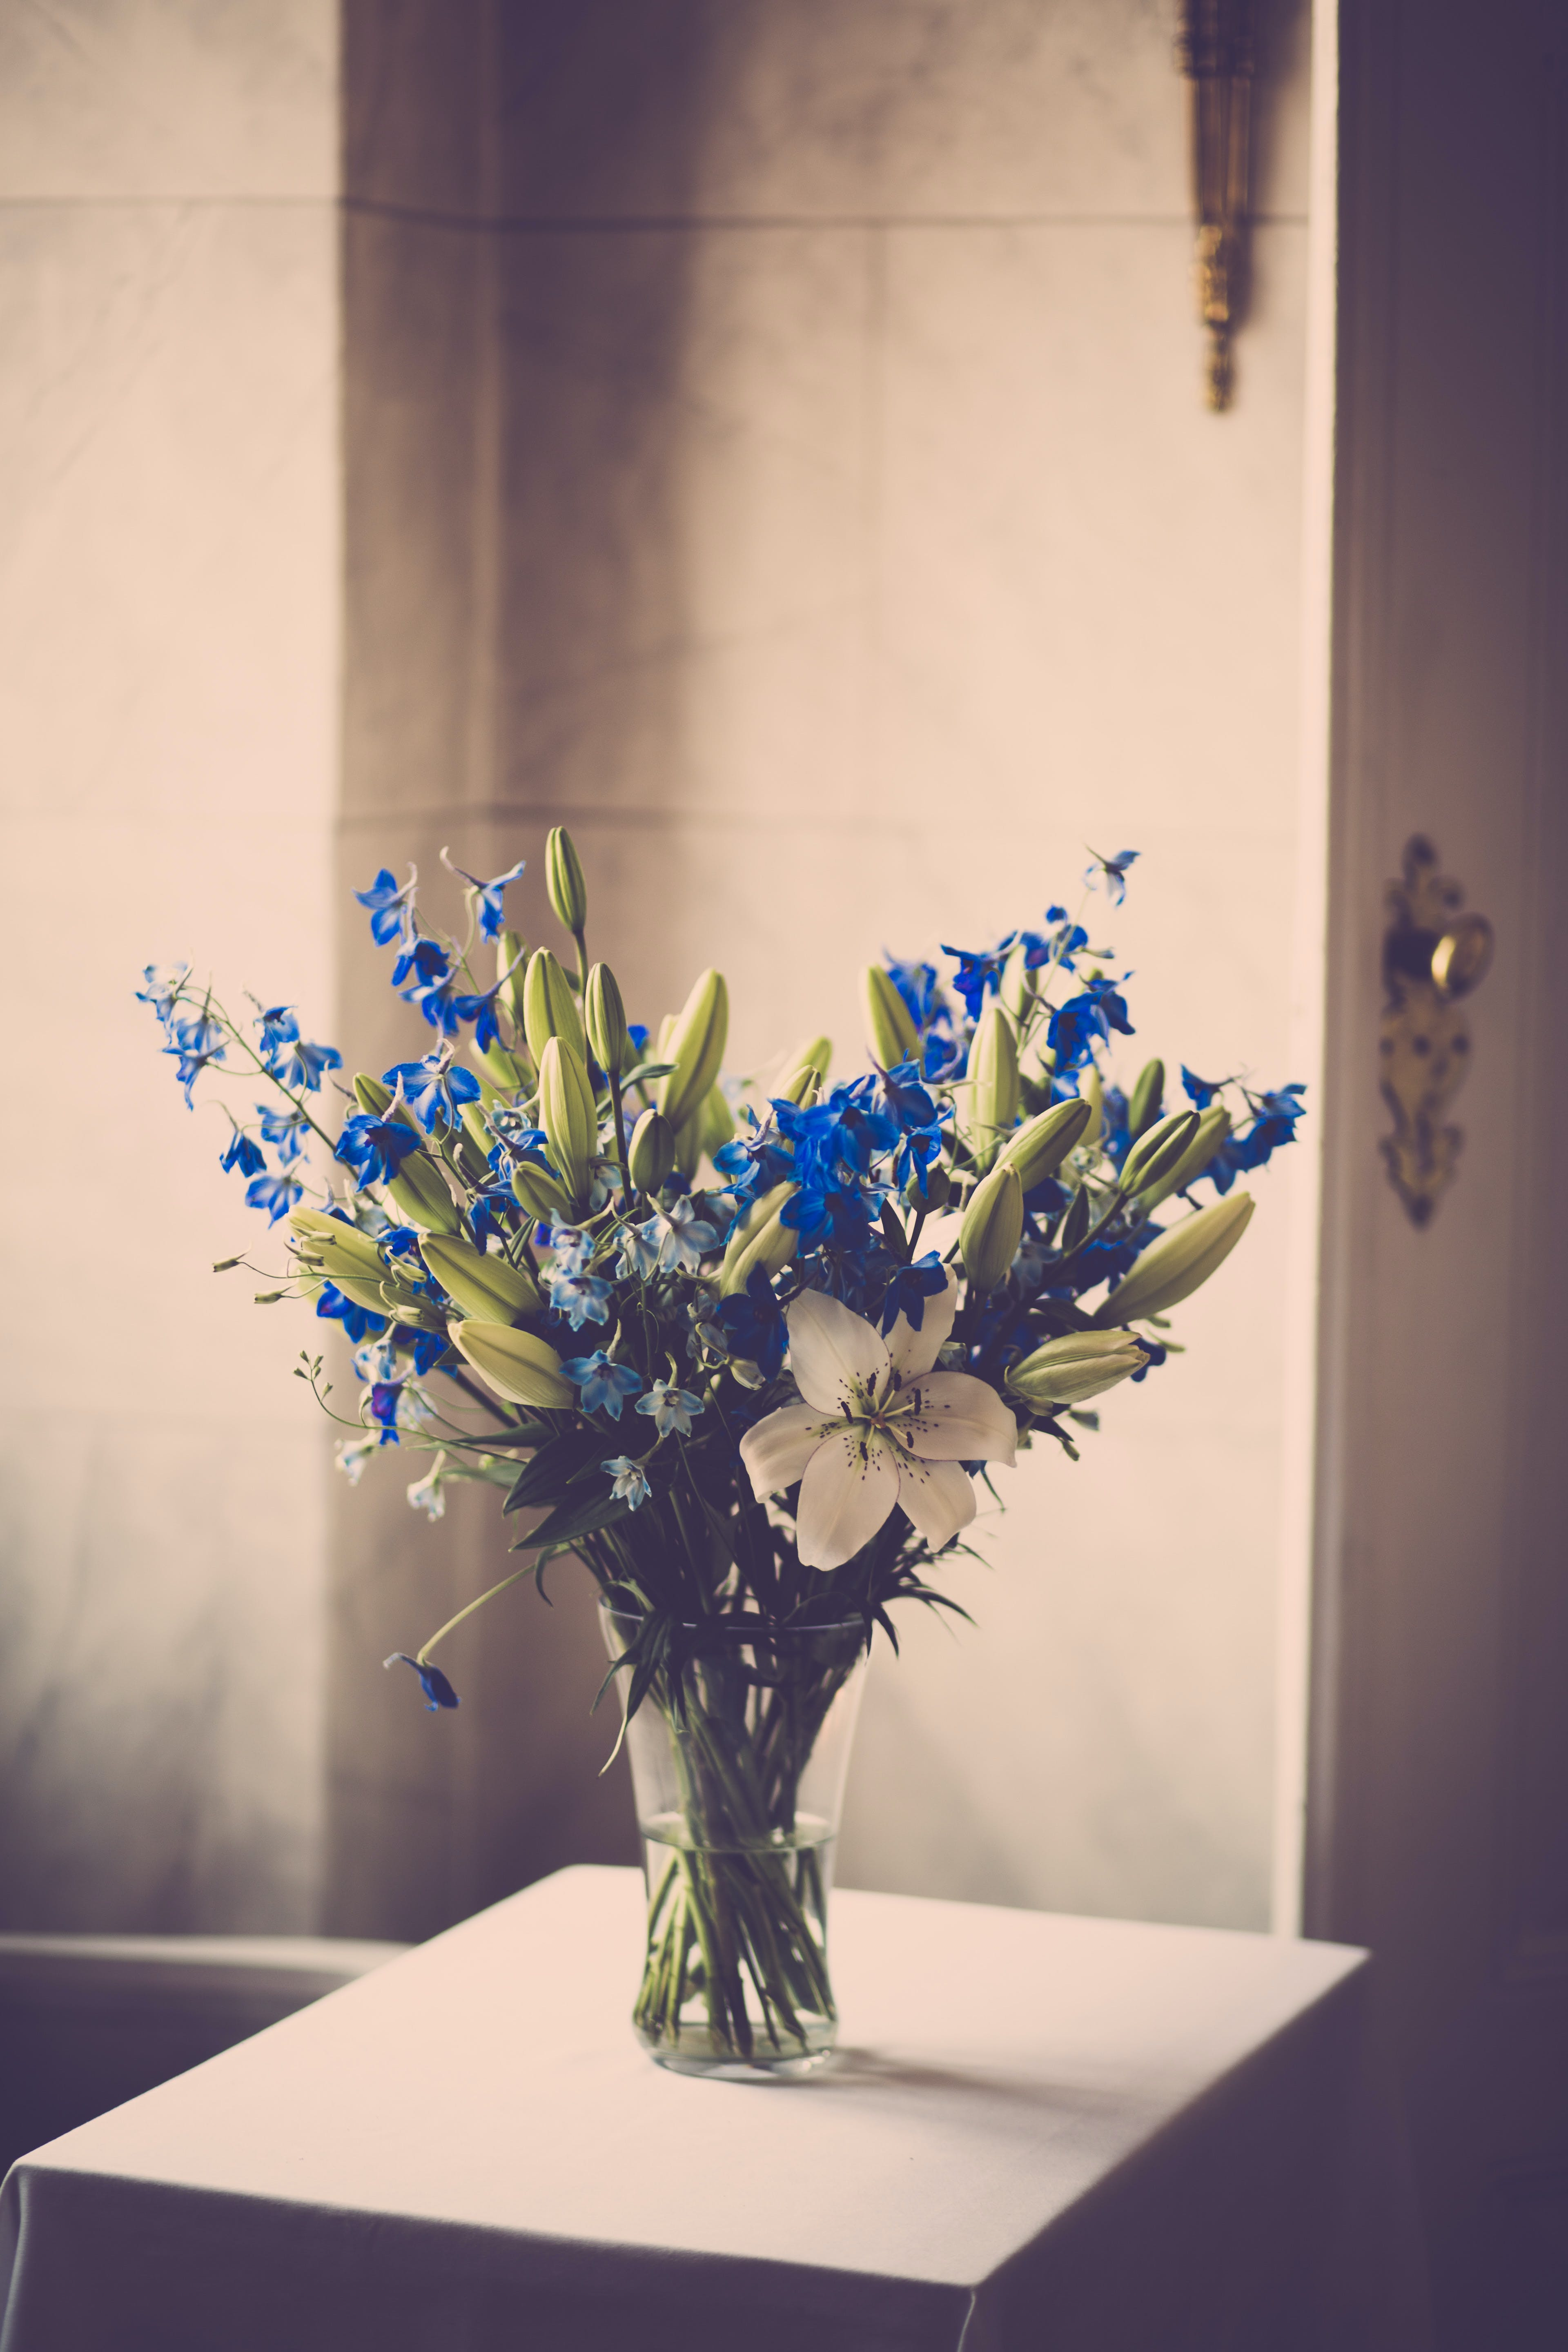 Blue and White Flowers in Clear Glass Vase on White Table